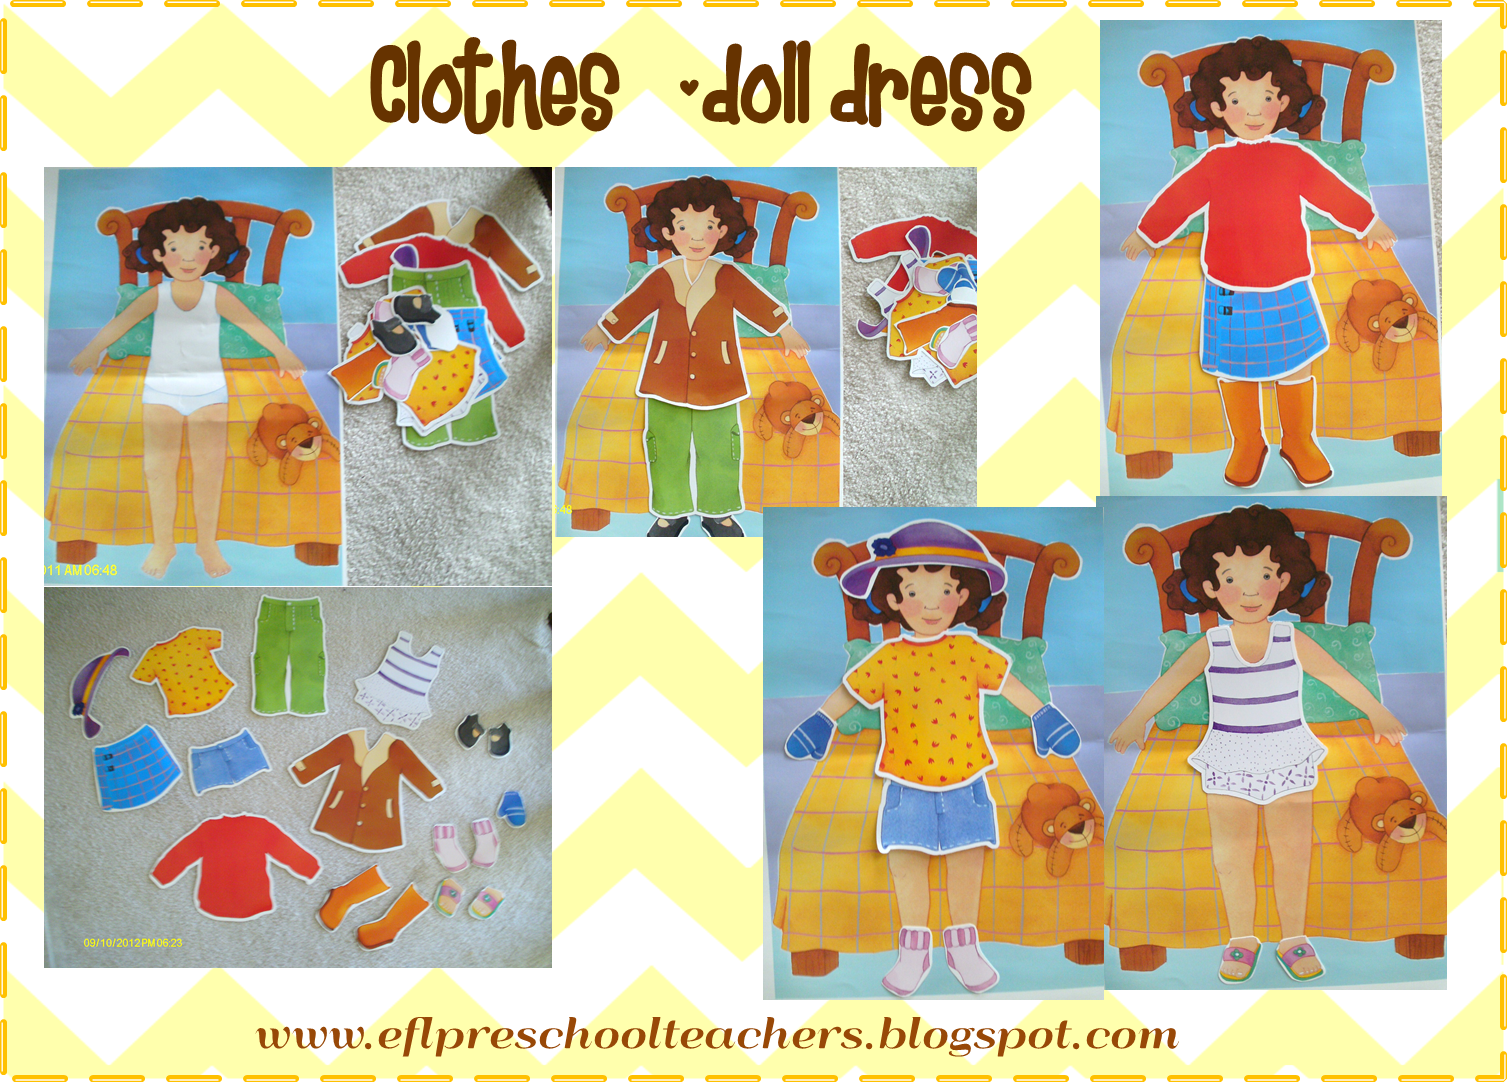 Esl Efl Preschool Teachers Clothes Theme Just Display The